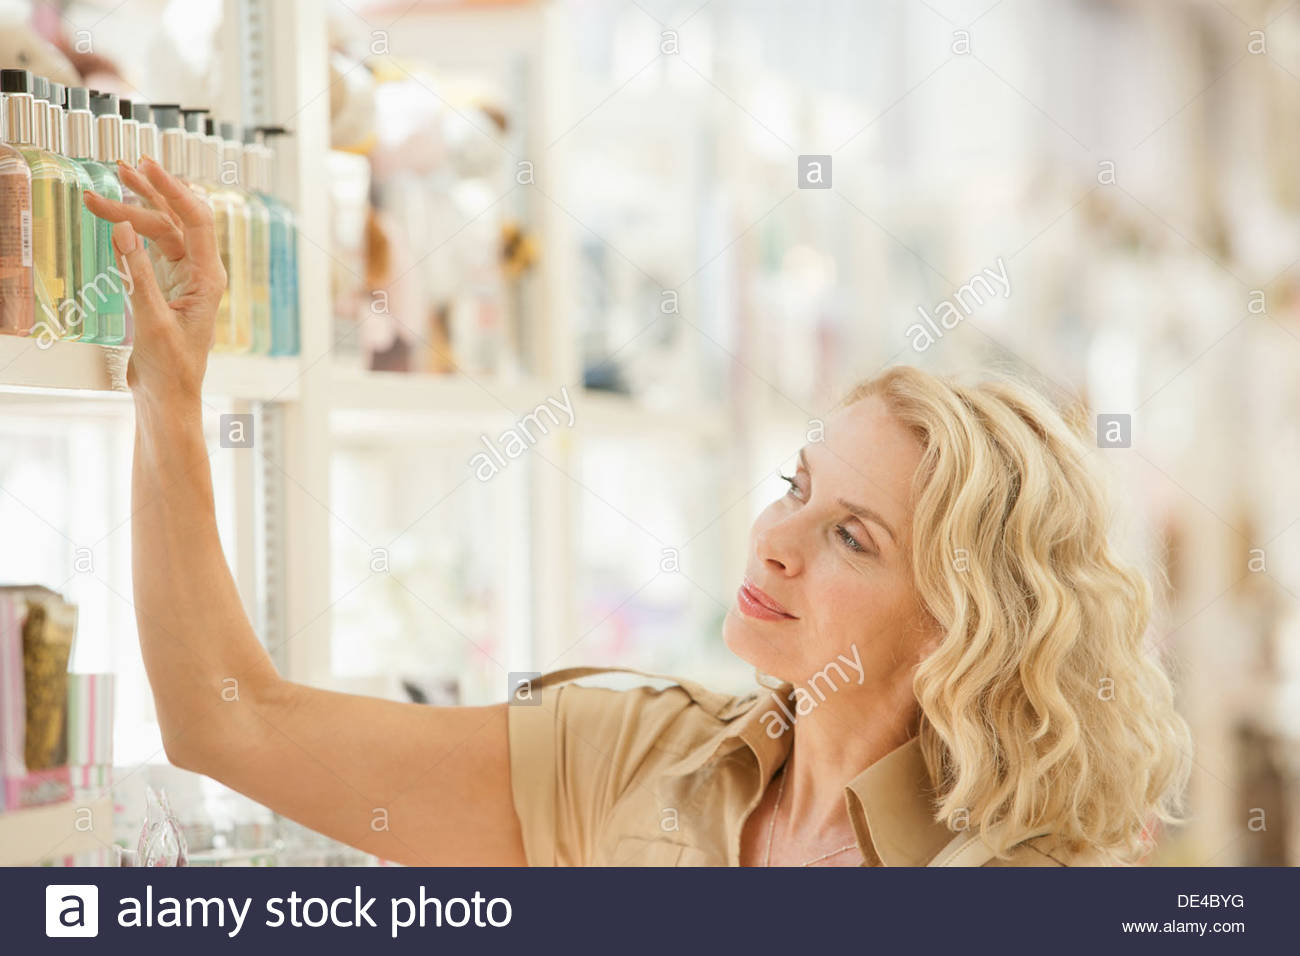 Smiling woman reaching for perfume on store shelf - Stock Image